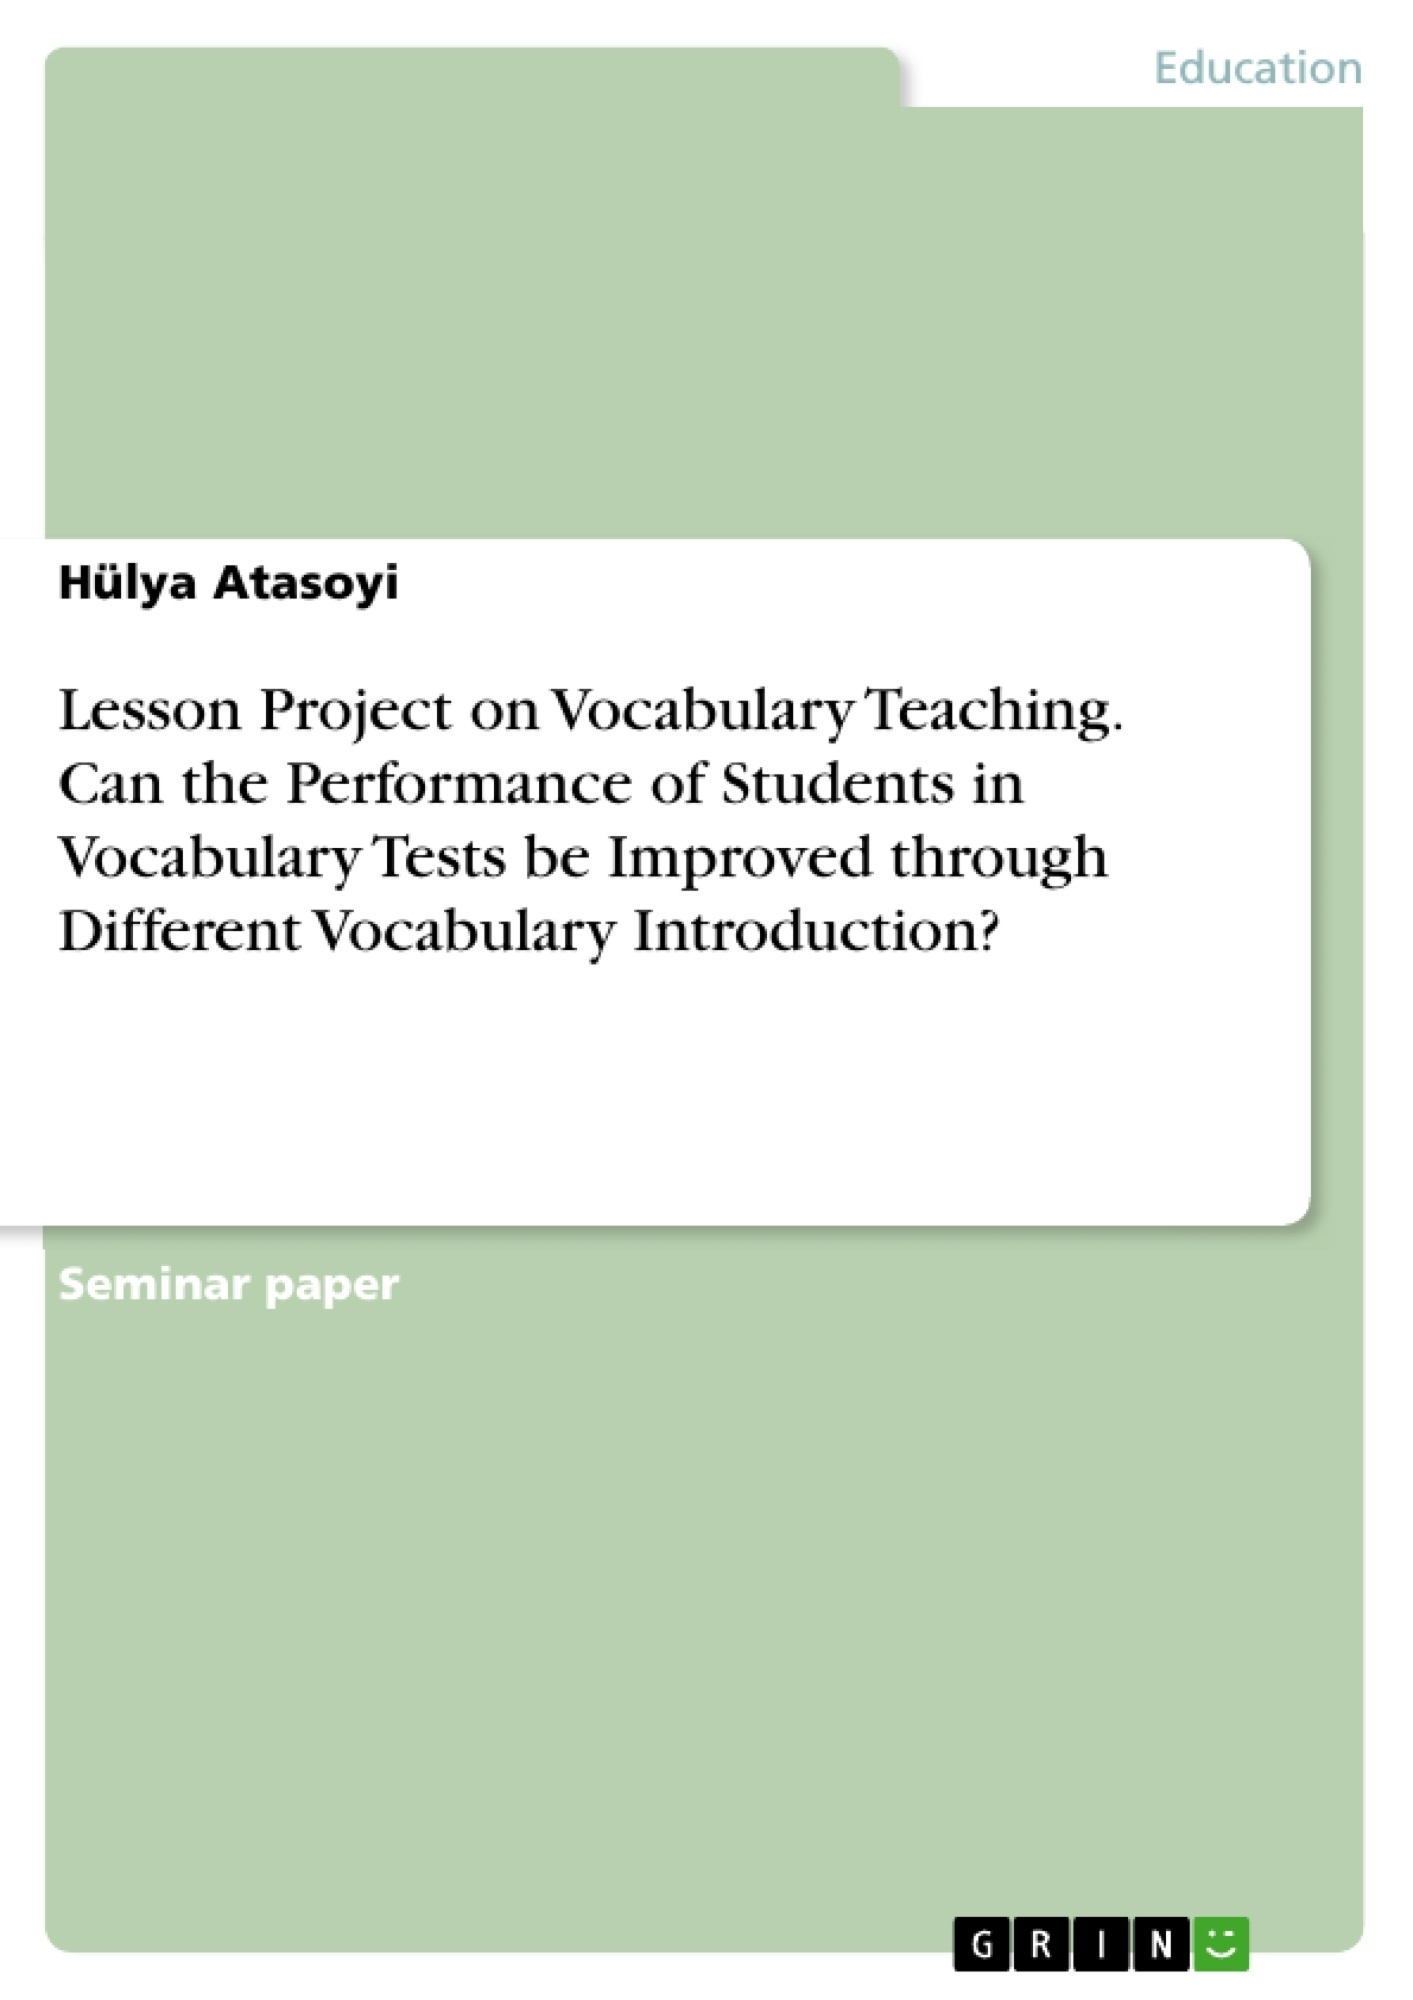 Title: Lesson Project on Vocabulary Teaching. Can the Performance of Students in Vocabulary Tests be Improved through Different Vocabulary Introduction?